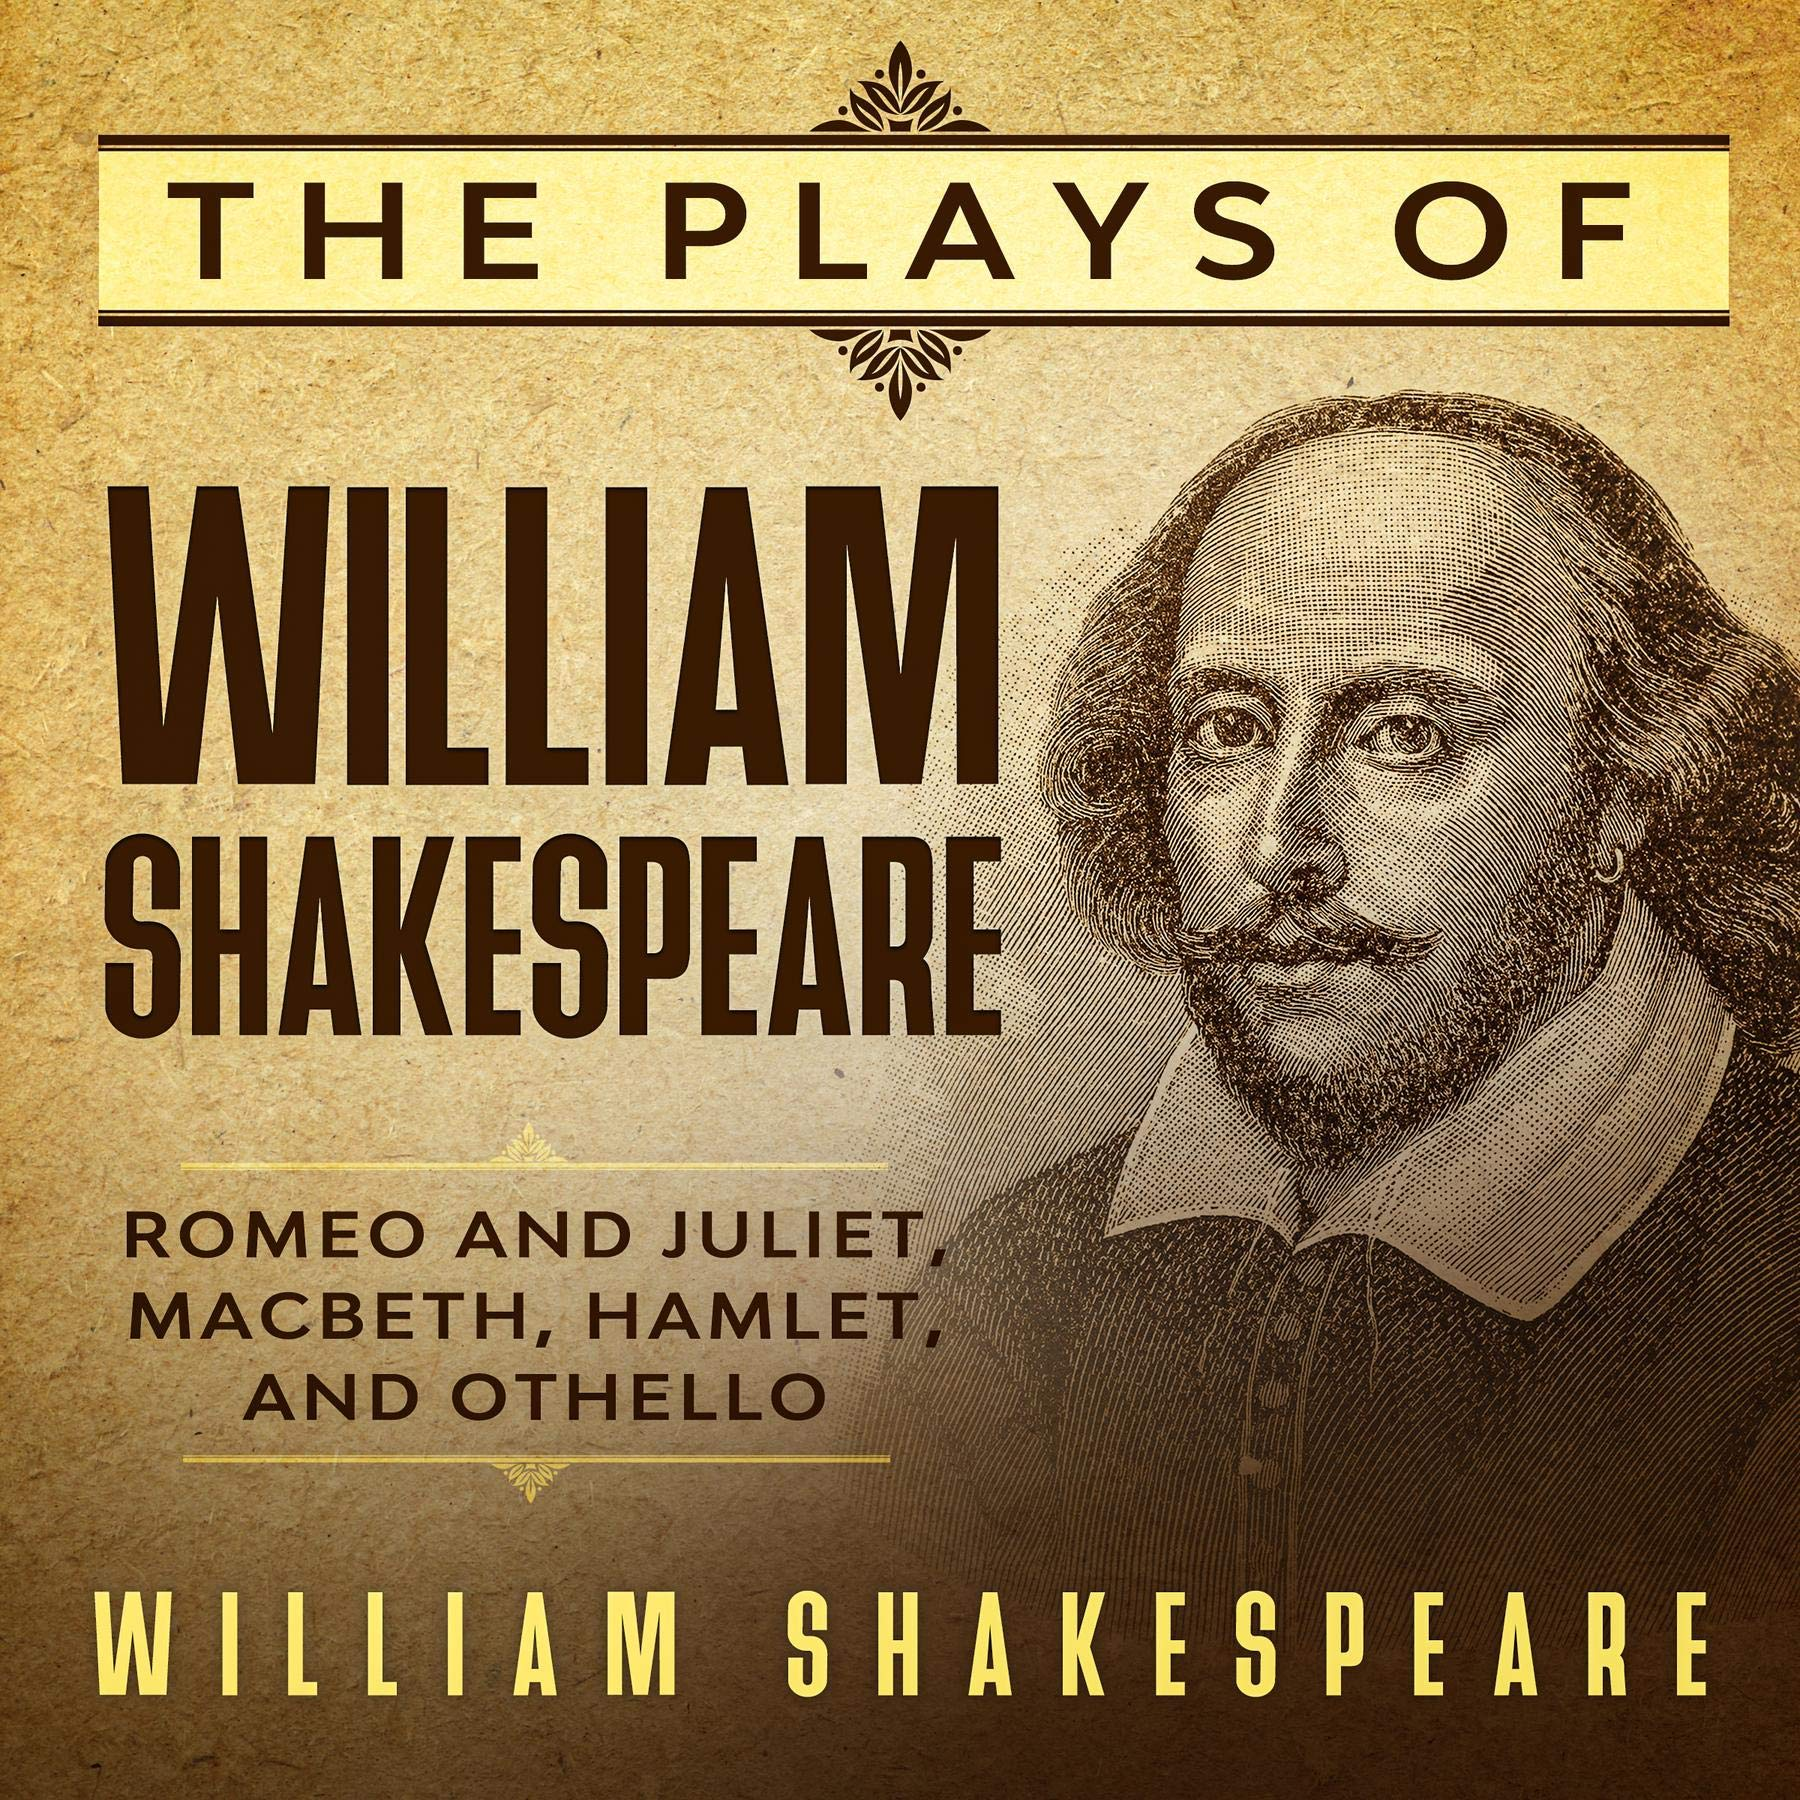 The Plays of William Shakespeare - Romeo and Juliet, Macbeth, Hamlet and Othello